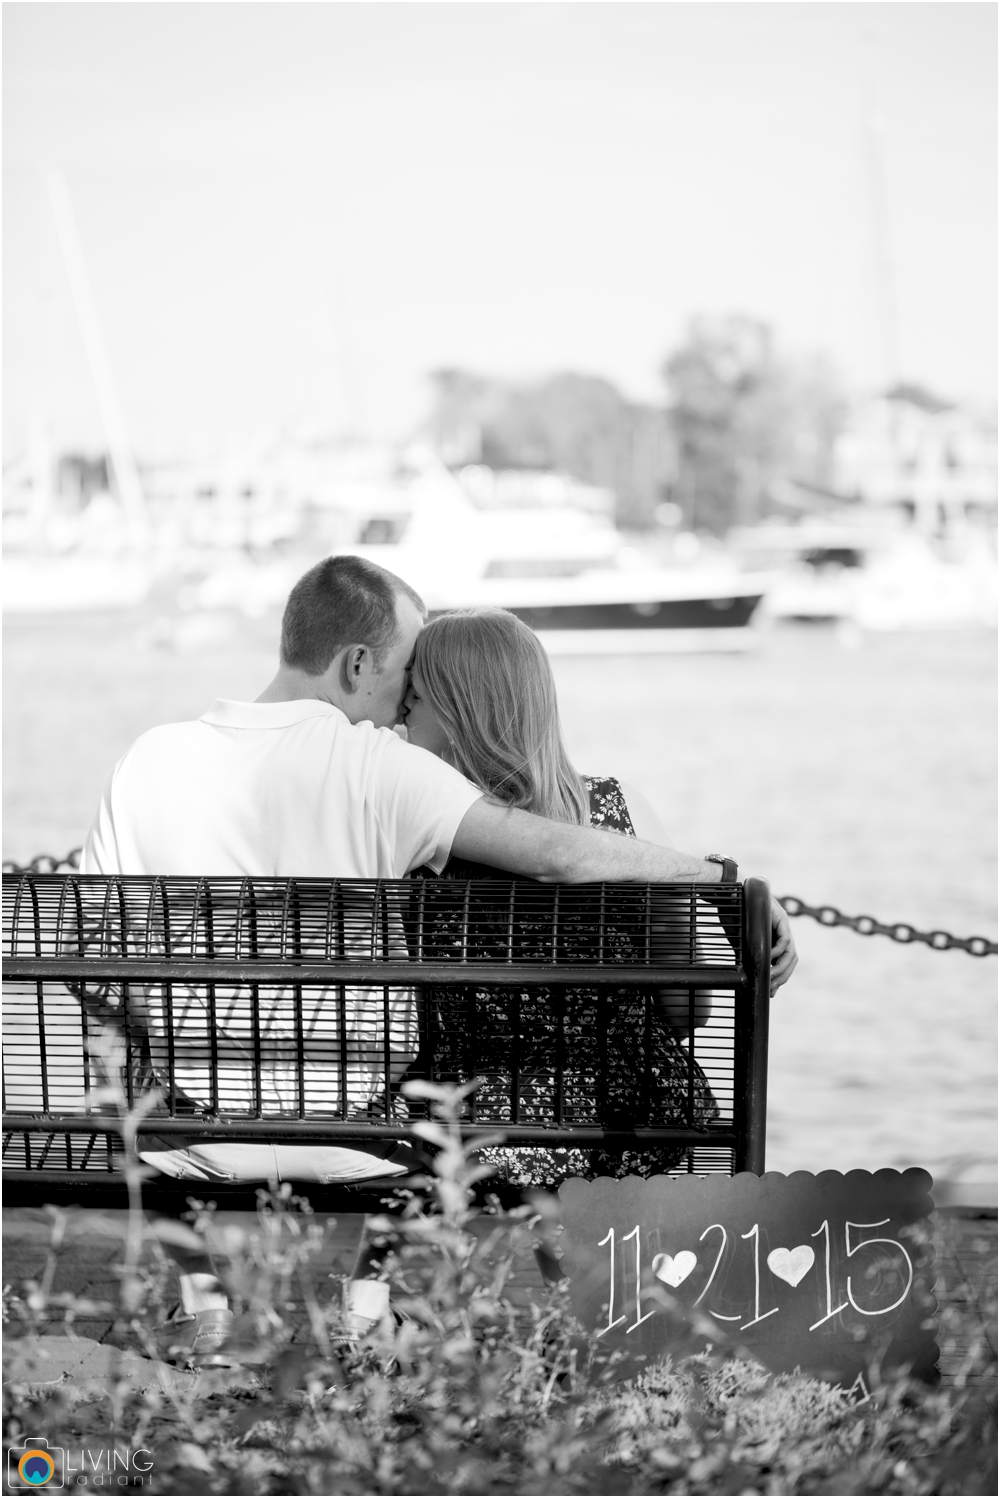 casey-clark-engaged-annapolis-downtown-naval-academy-engagement-session-living-radiant-photography-maggie-patrick-nolan-outdoor-water-boats_0022.jpg